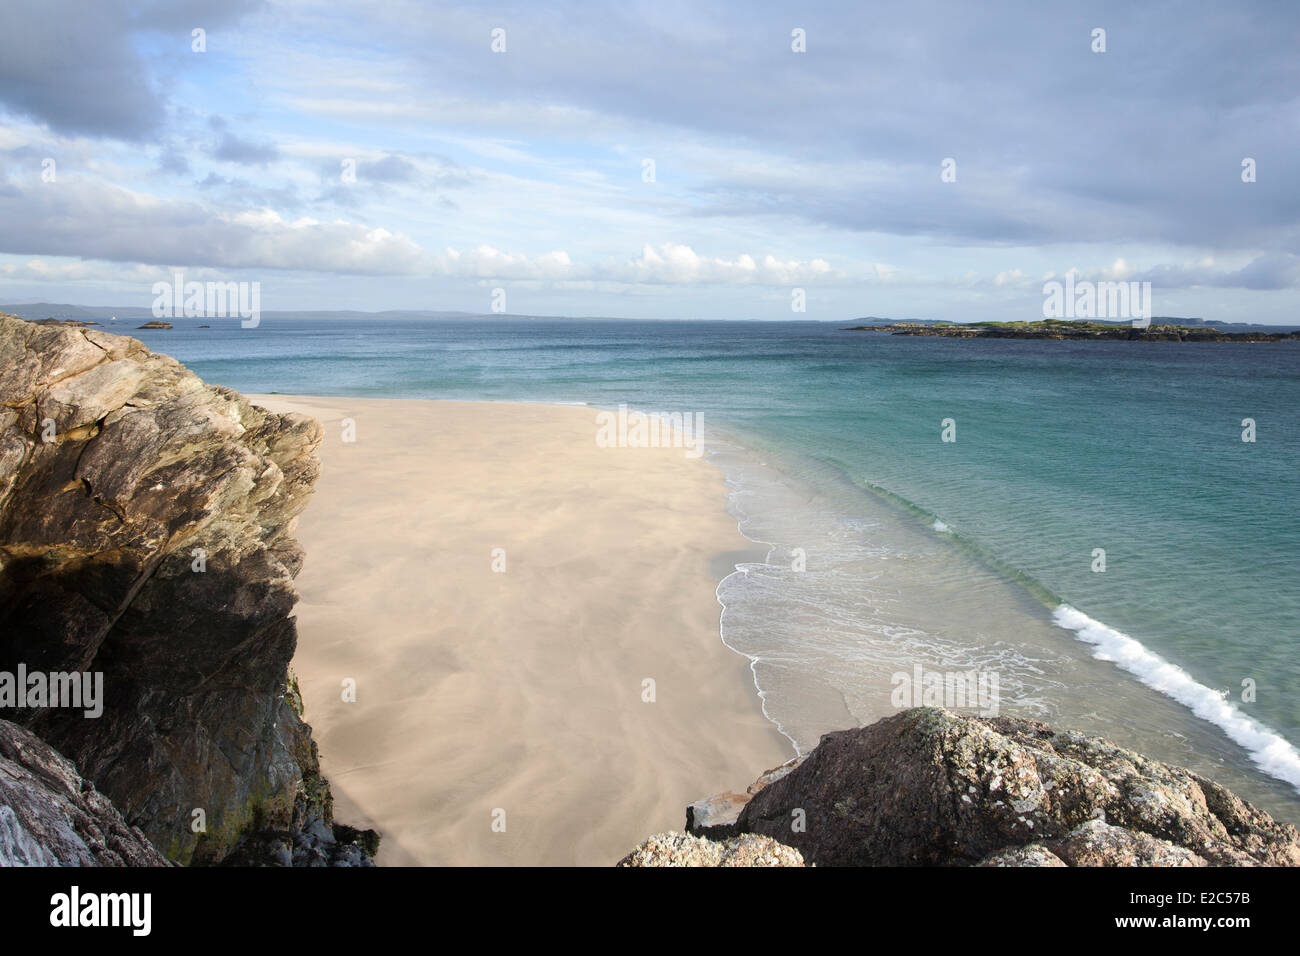 A deserted Irish beach on the Island of Inishbofin, in the West of Ireland with waves breaking on the golden sandy Stock Photo